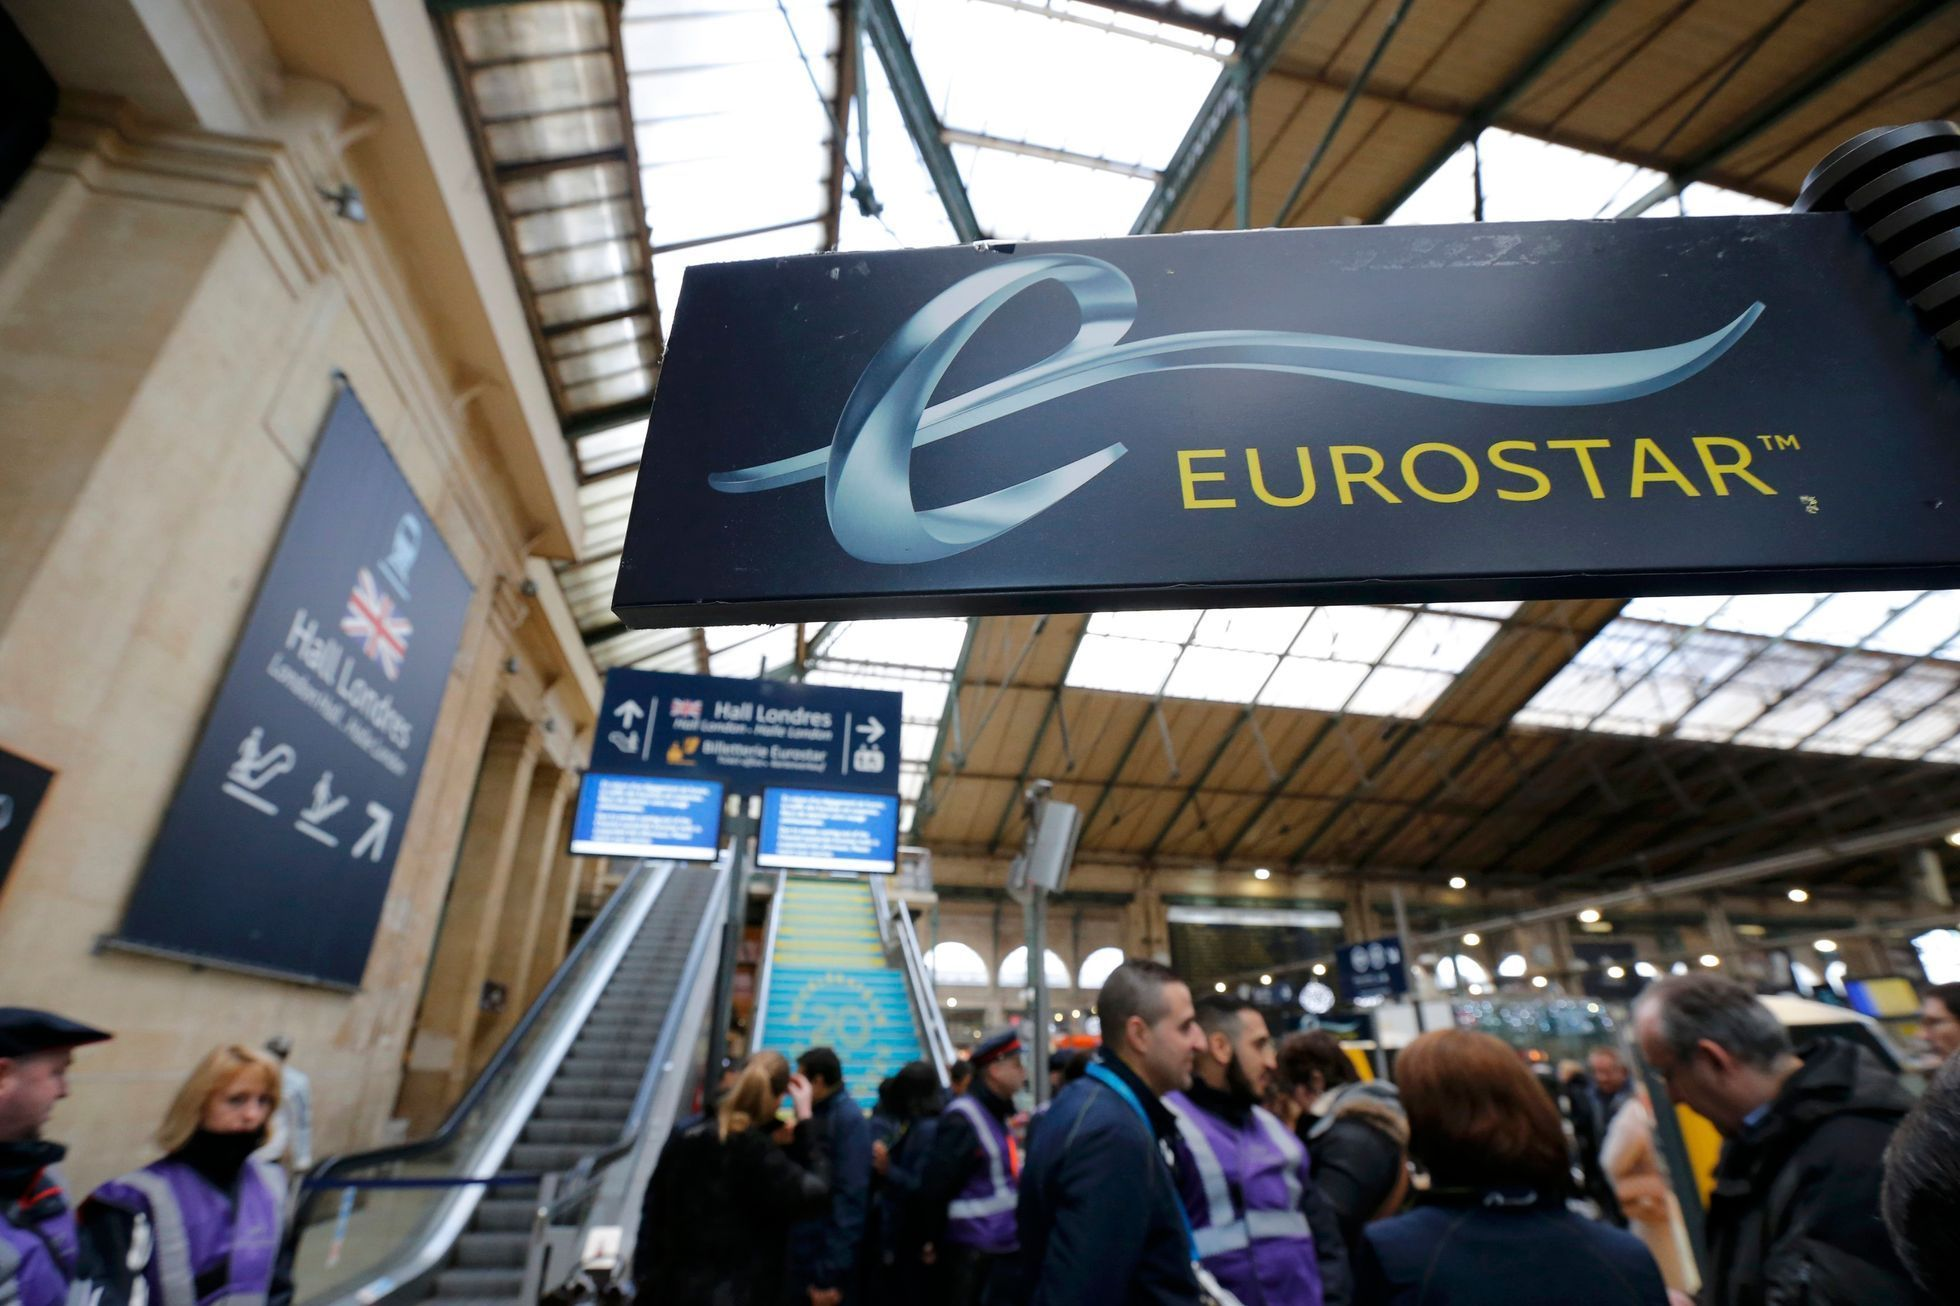 Passengers gather near the departure escalators at the Gare du Nord train station after the suspension of Eurostar rail traffic due to smoke coming out of the Channel tunnel